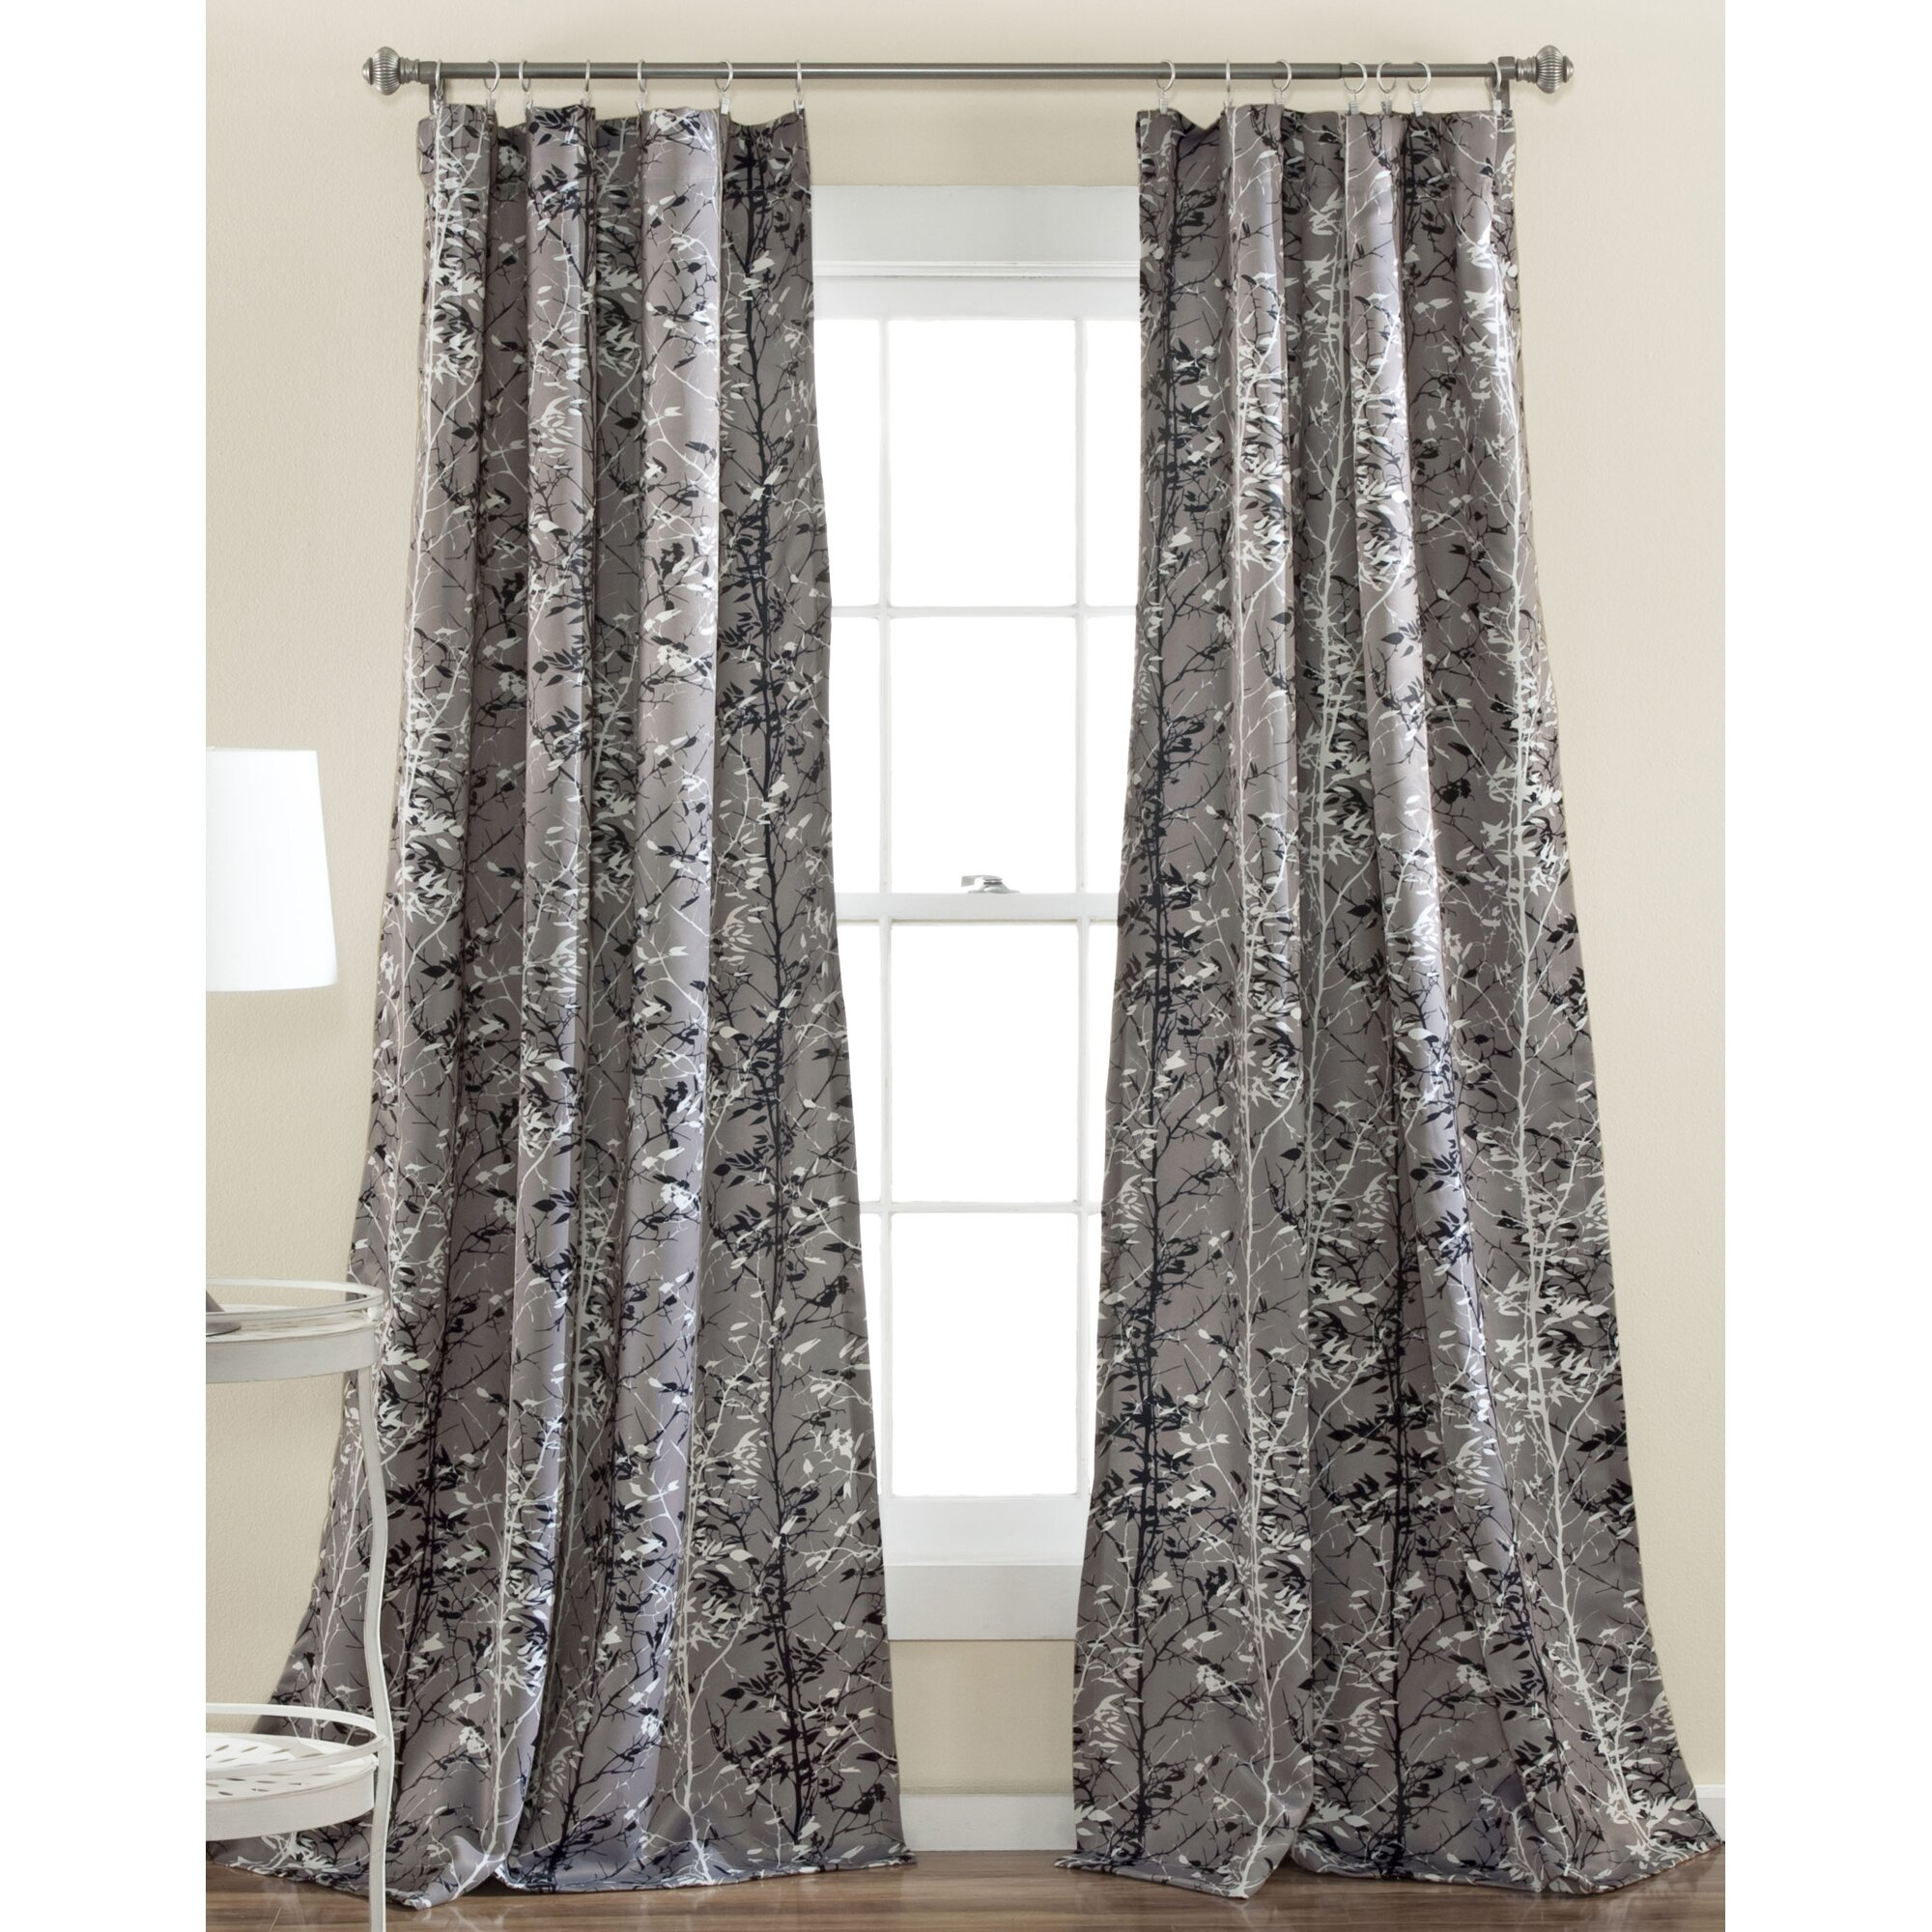 Lush Decor Forest Room Darkening Thermal Curtain Panels